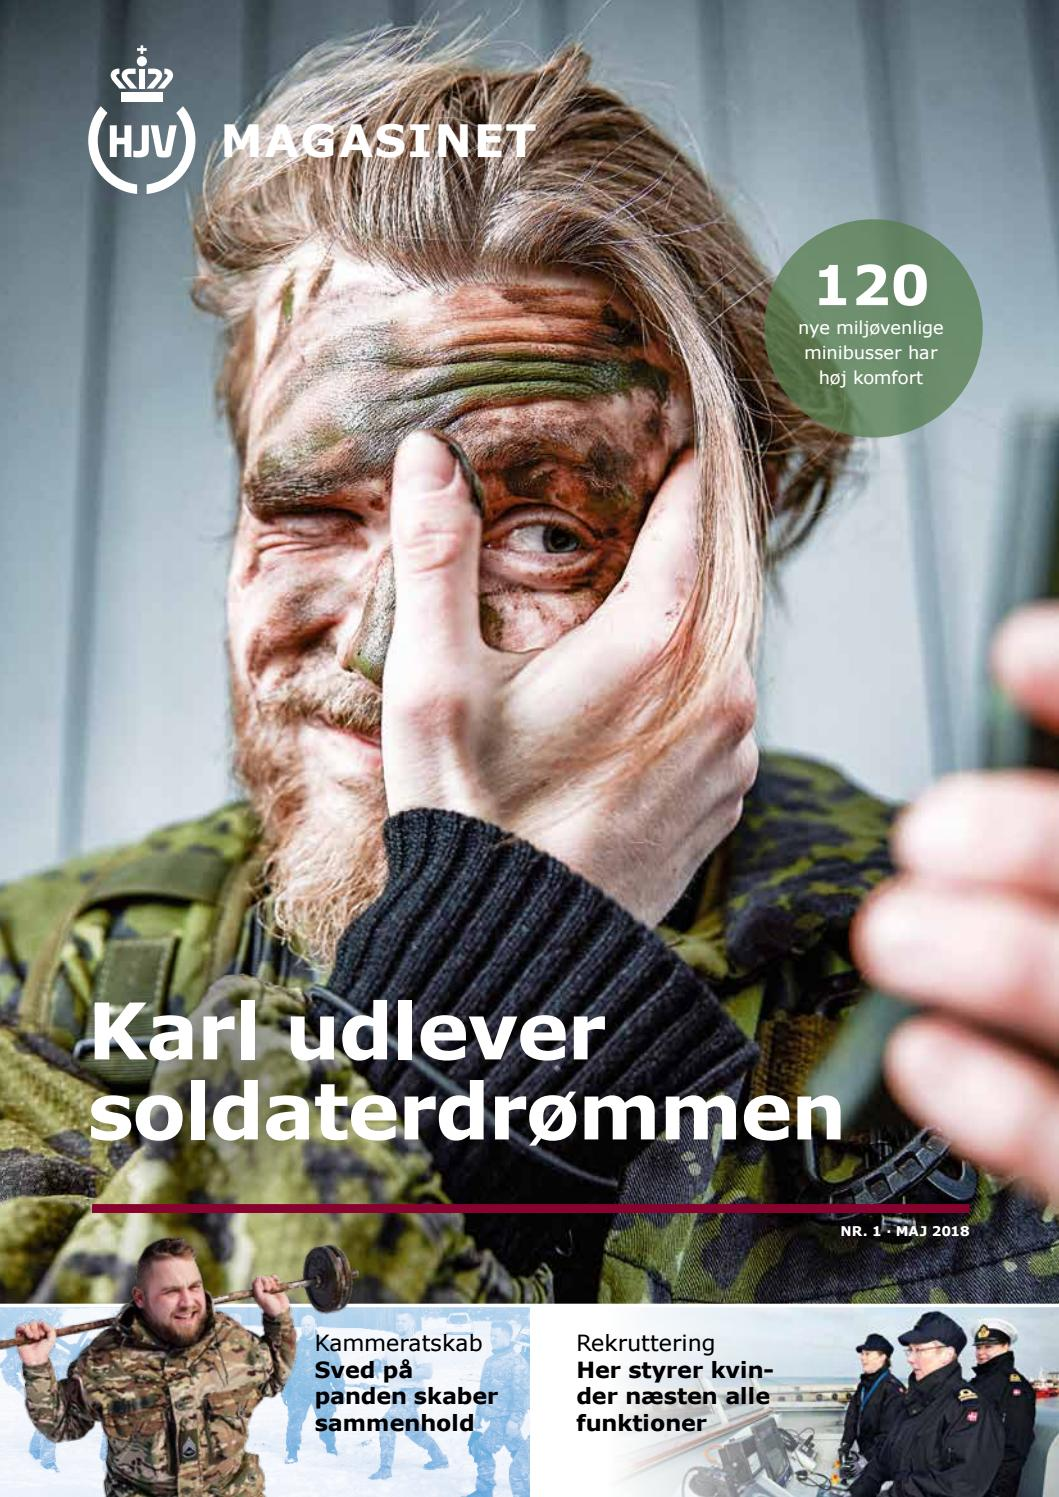 dating militærpolitiet